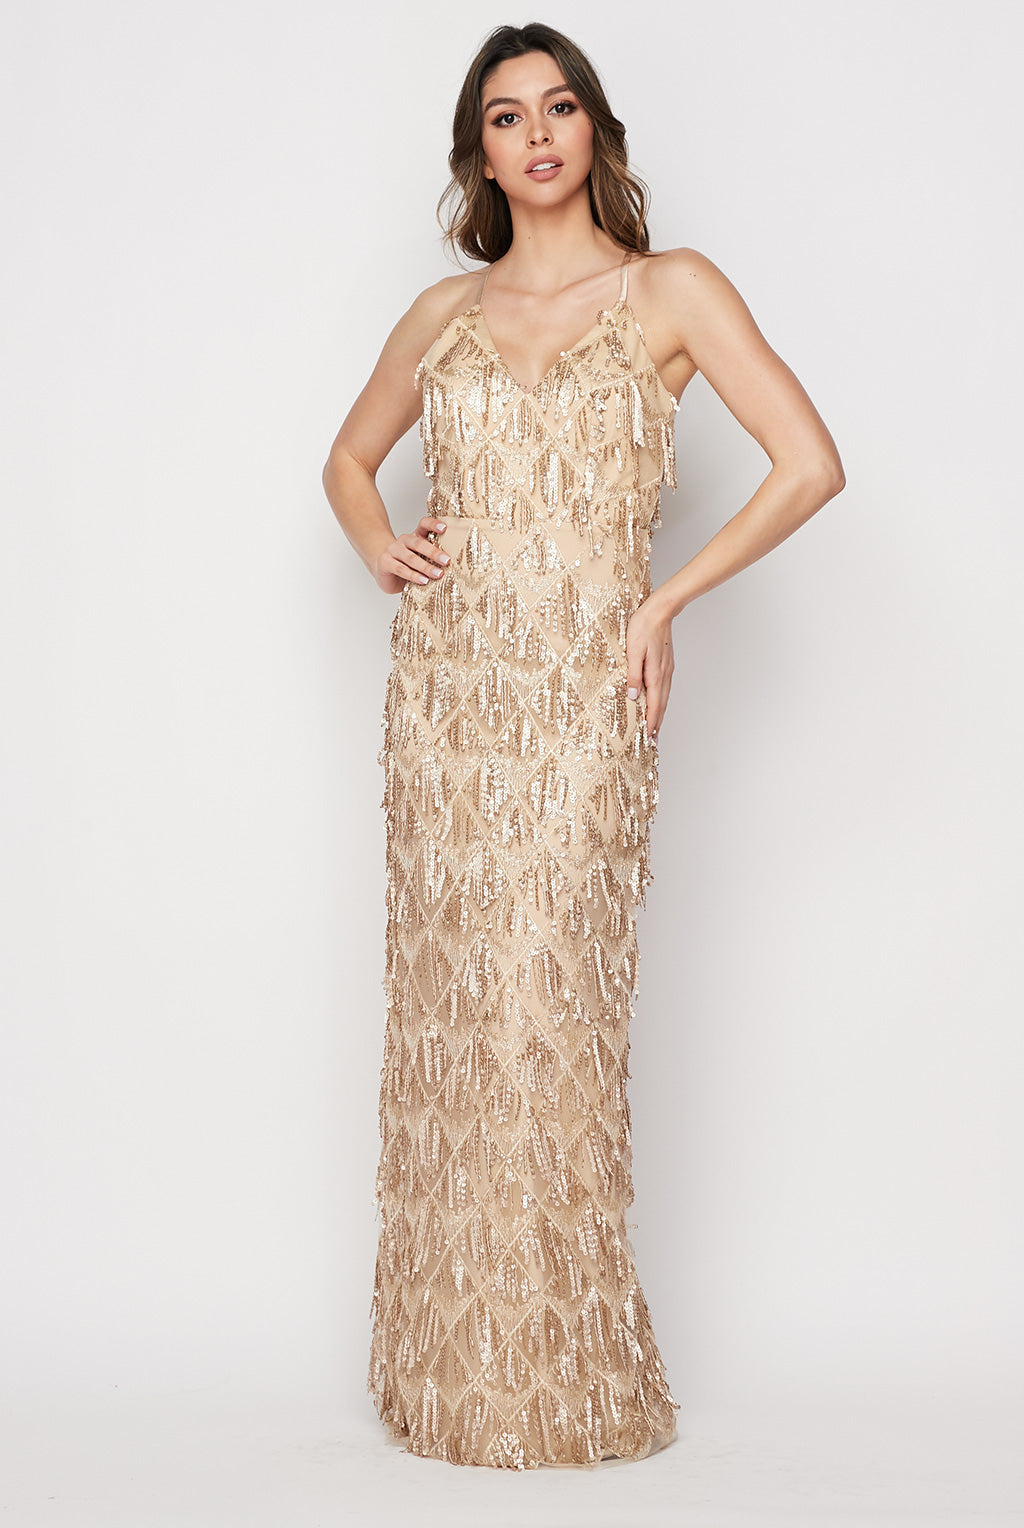 Teeze Me | Fringe Sequin Column Formal Gown | Gold